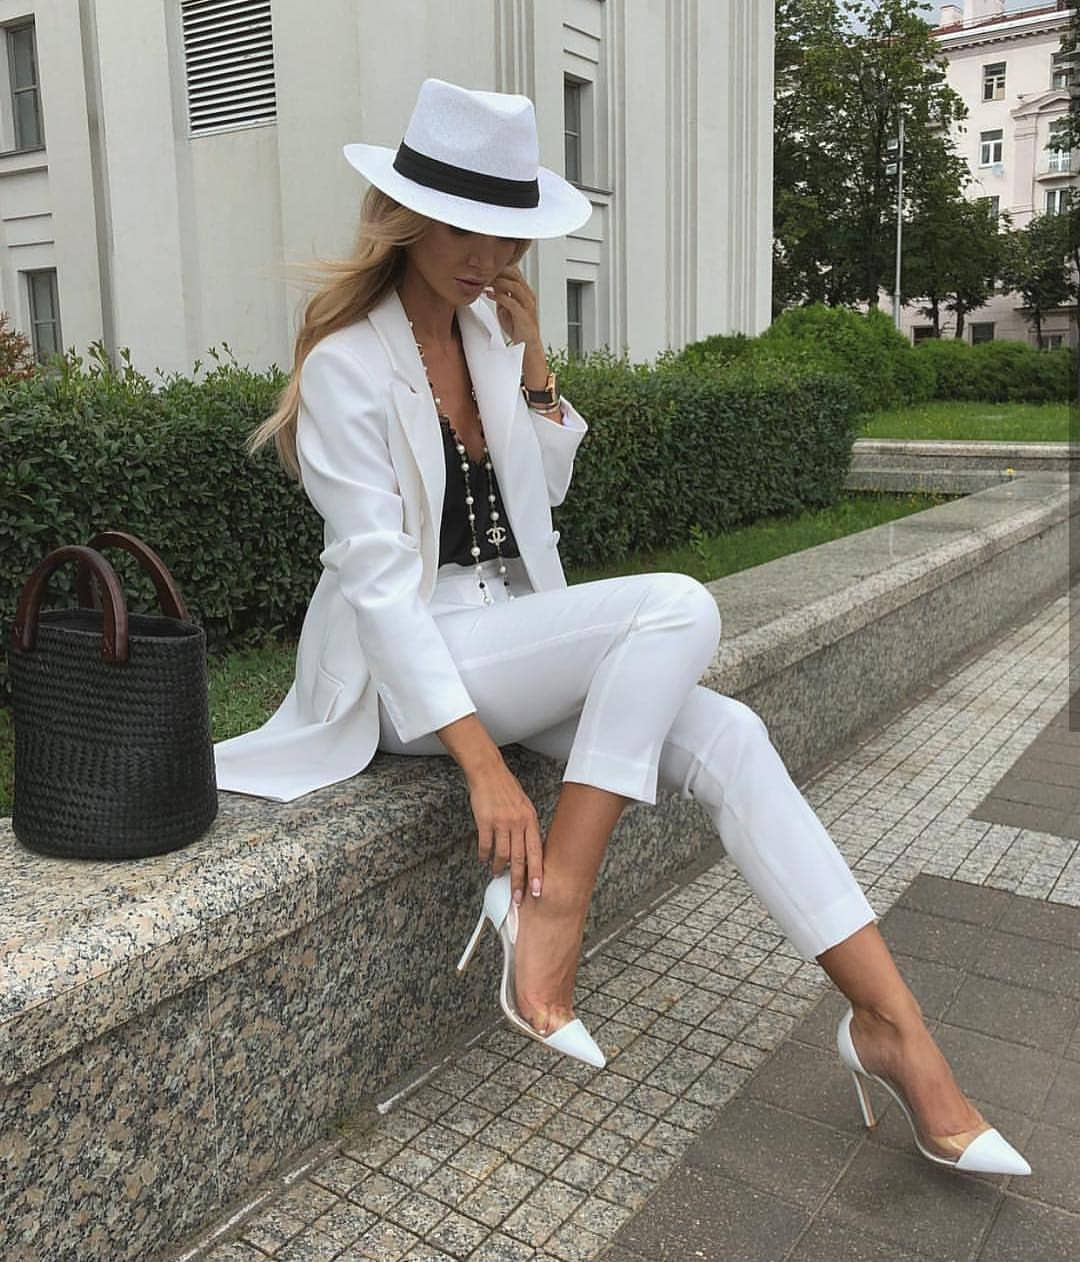 All White Pantsuit For Summer: Panama Hat, Pointy Heels And Black Straw Bucket Bag 2020